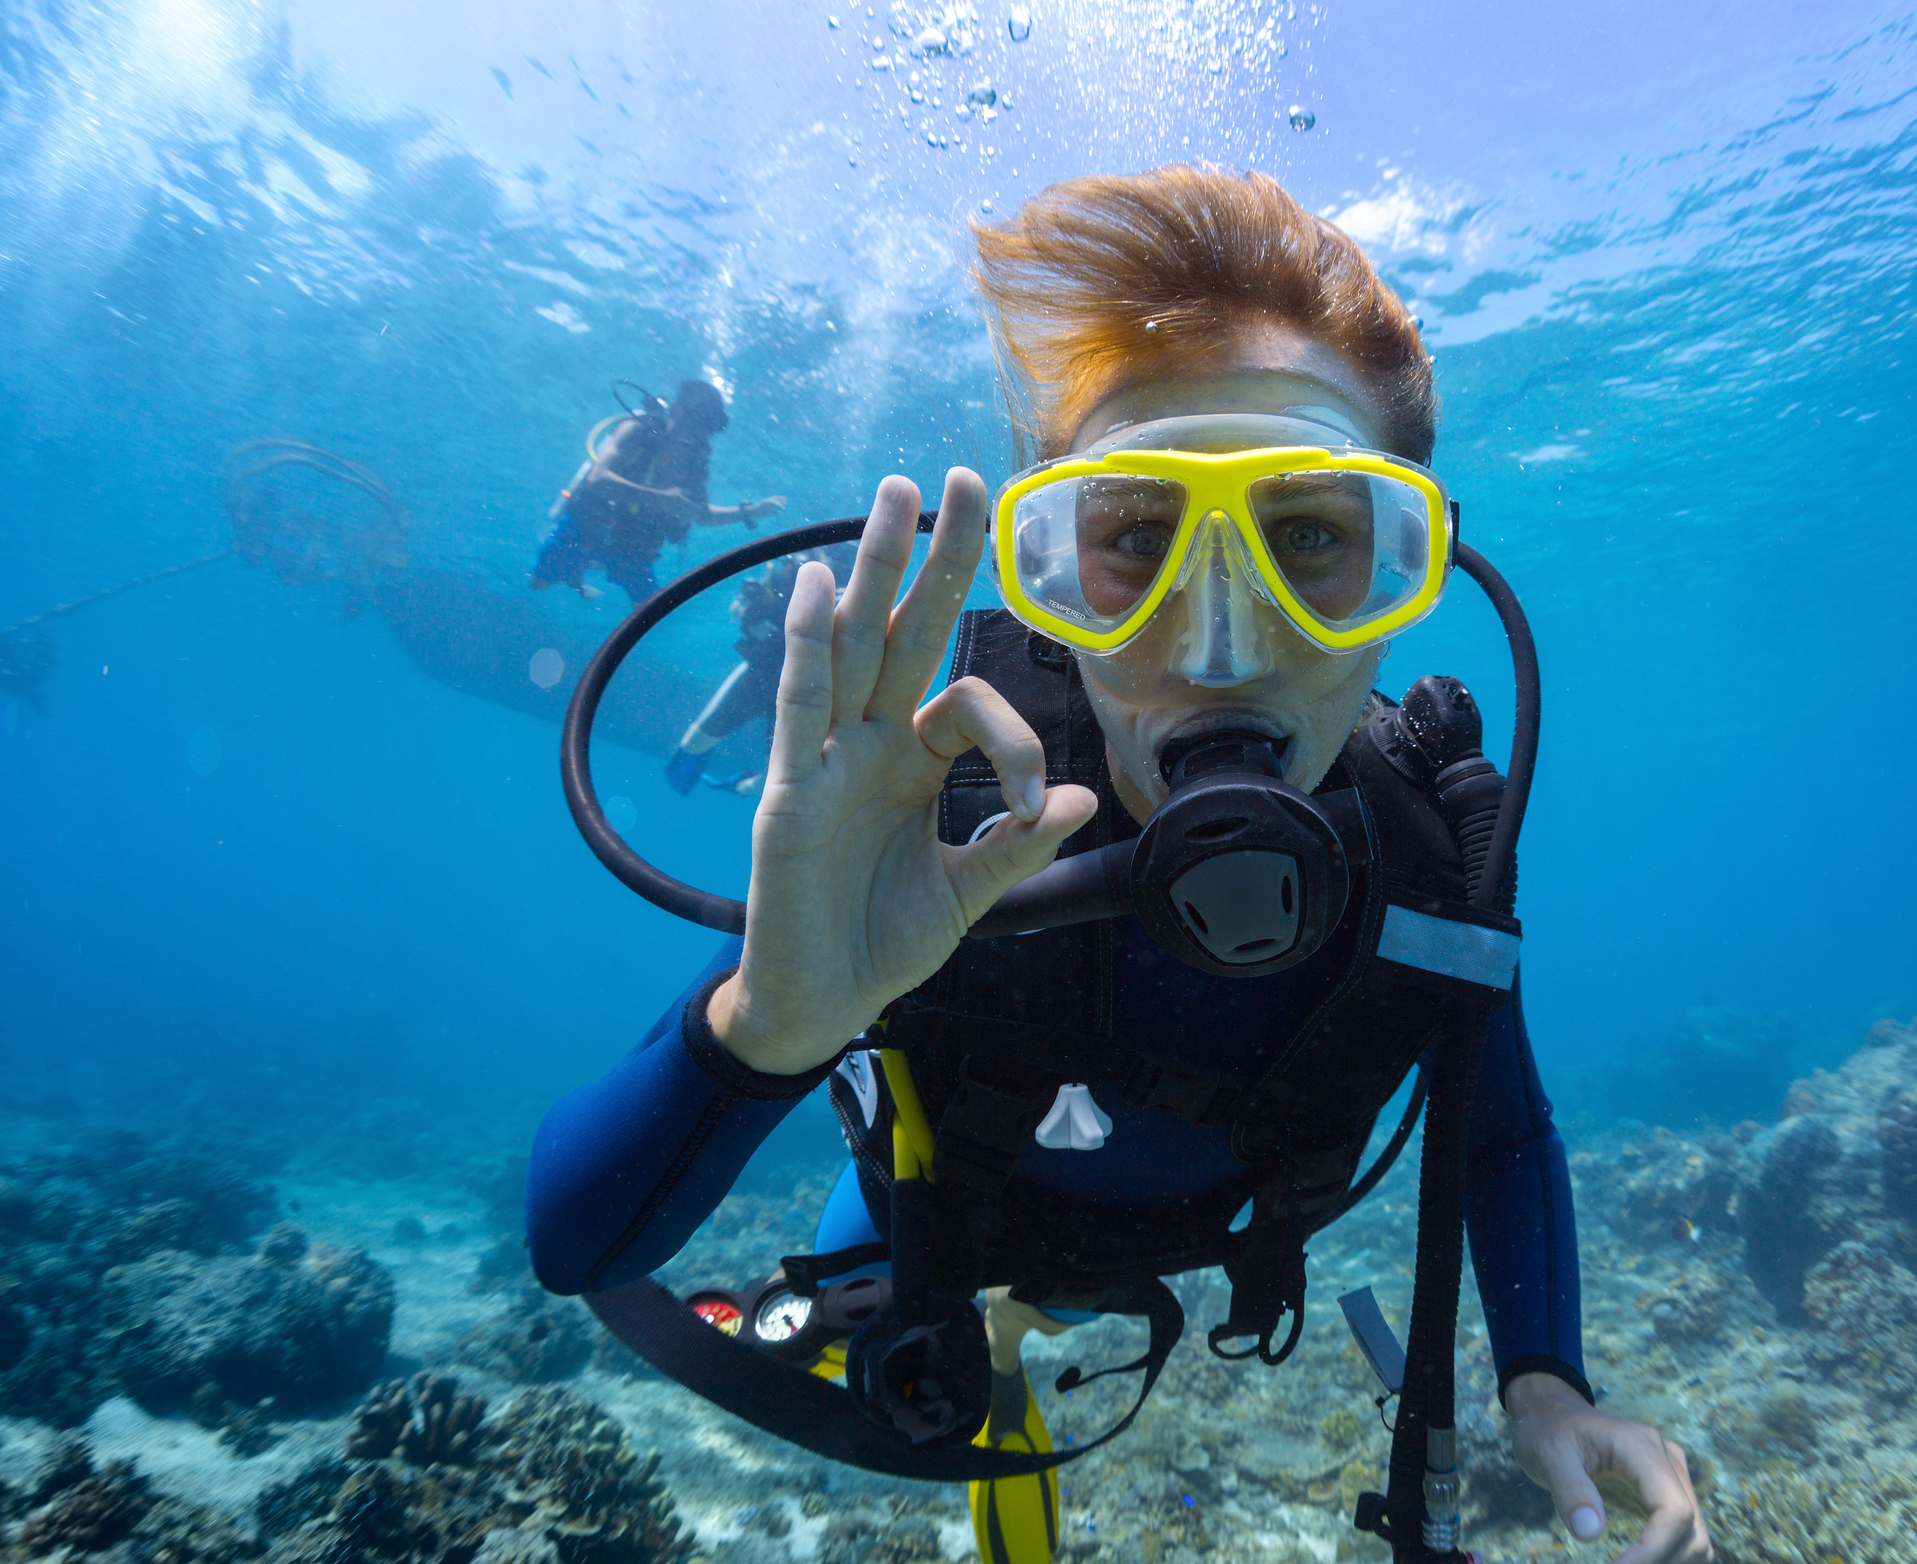 Earn Your Scuba Diving Certification Through Course At Richmondcc